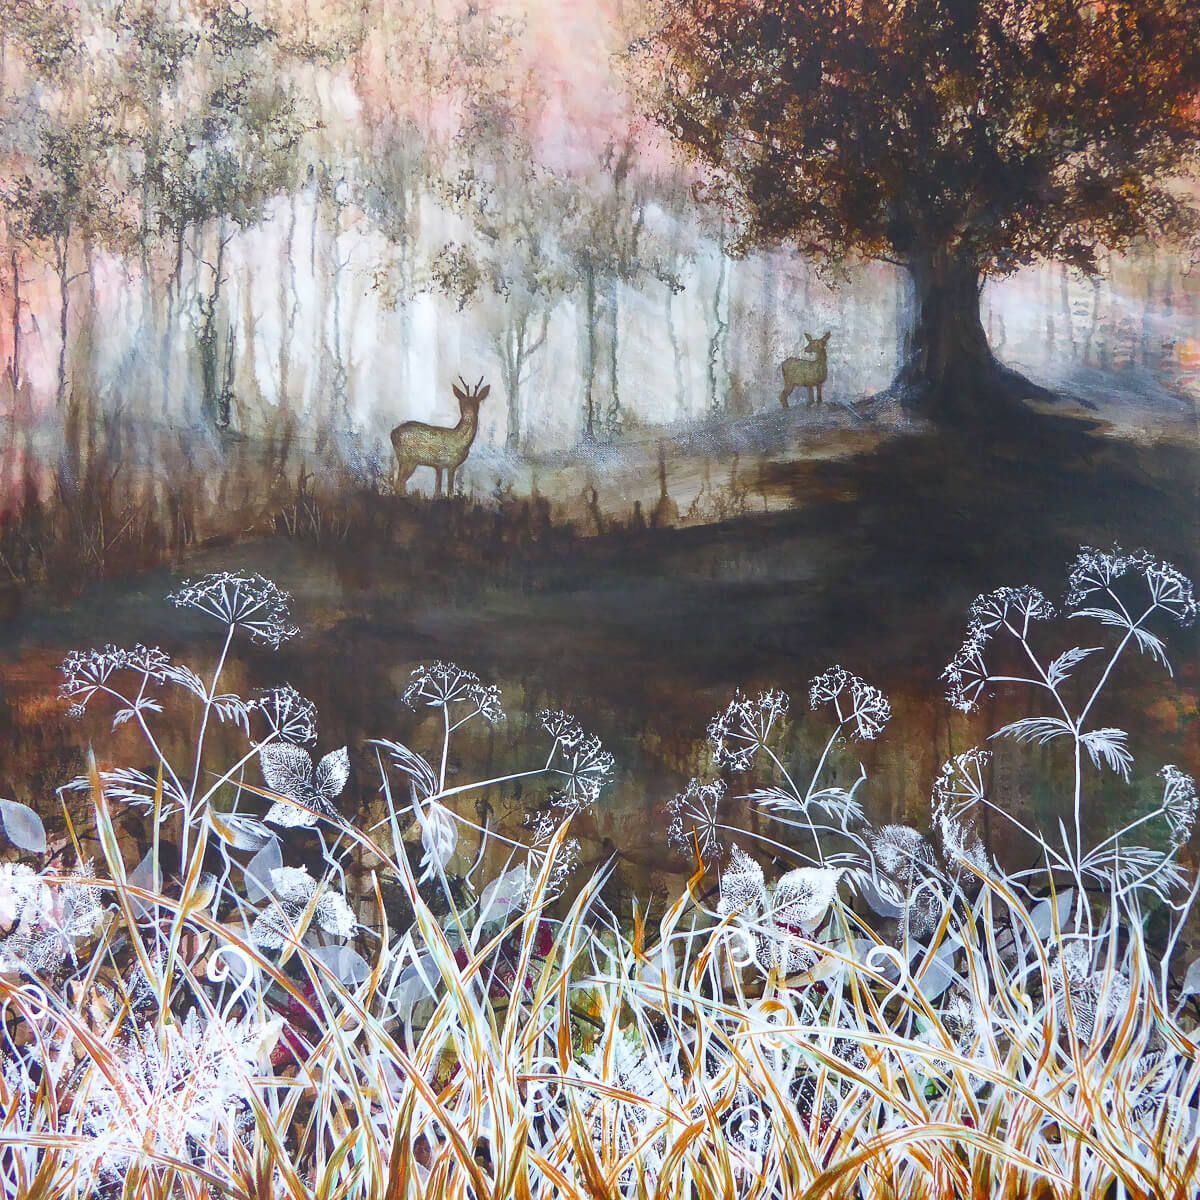 Commisioned forest scene painting by Bron Jones